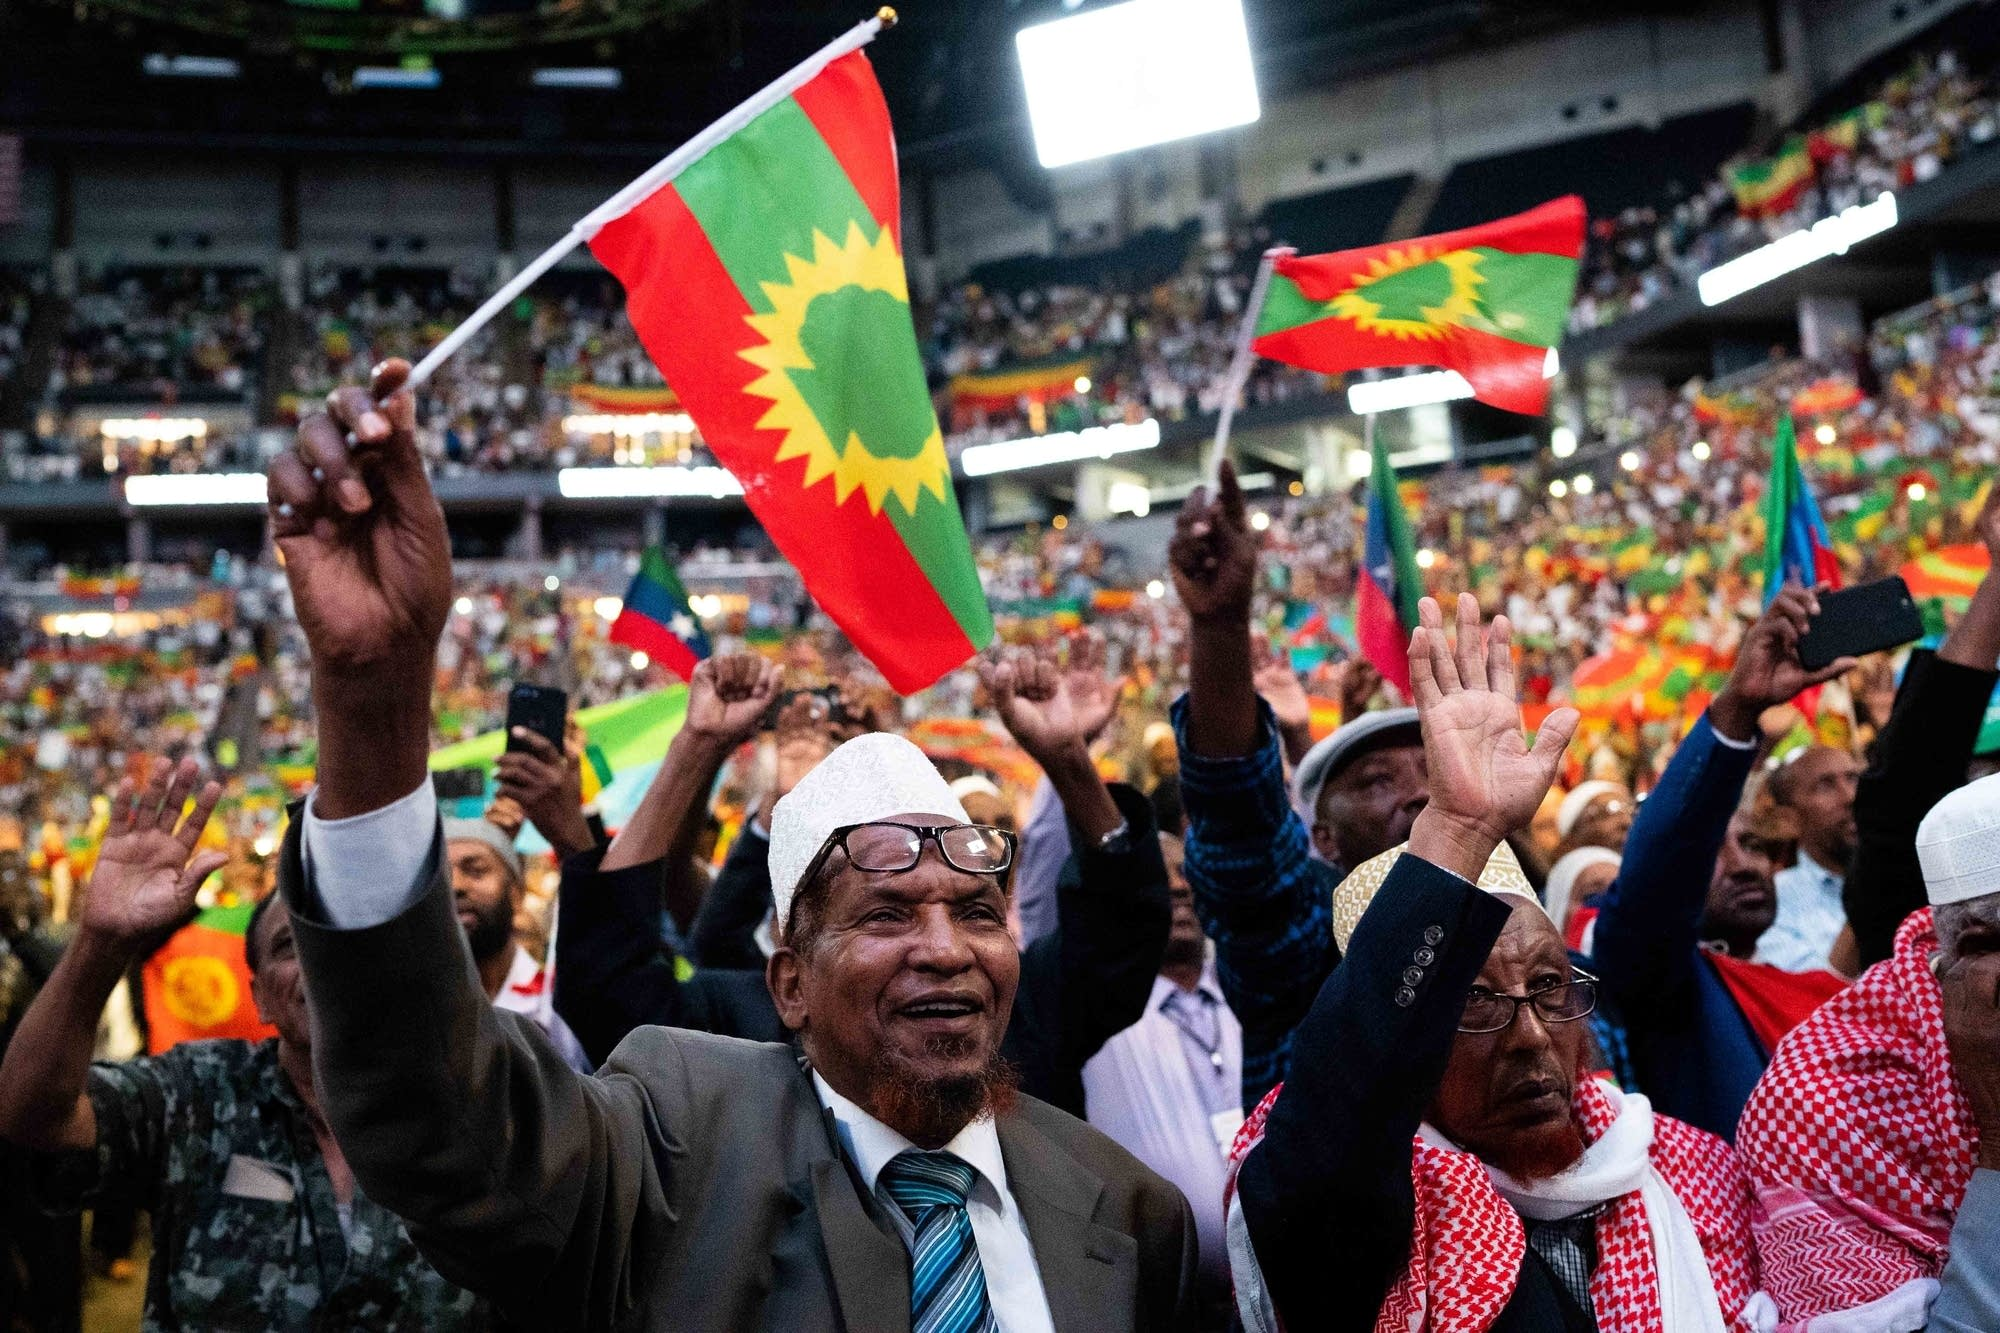 Supporters of Ethiopian Prime Minister Abiy Ahmed wave flags.